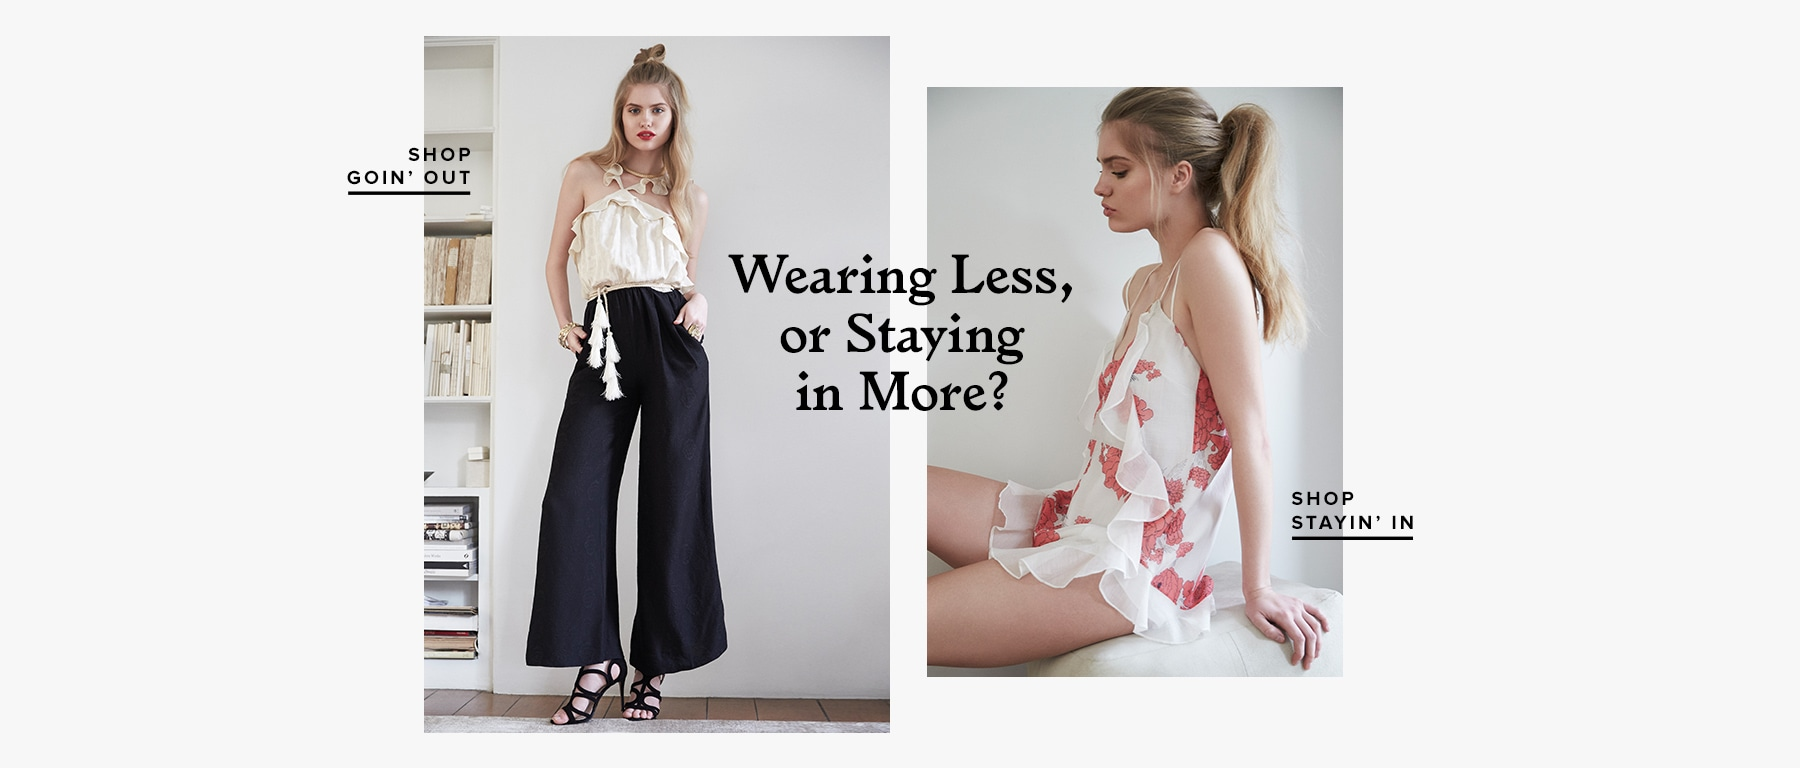 WEARING LESS OR STAYING IN MORE?